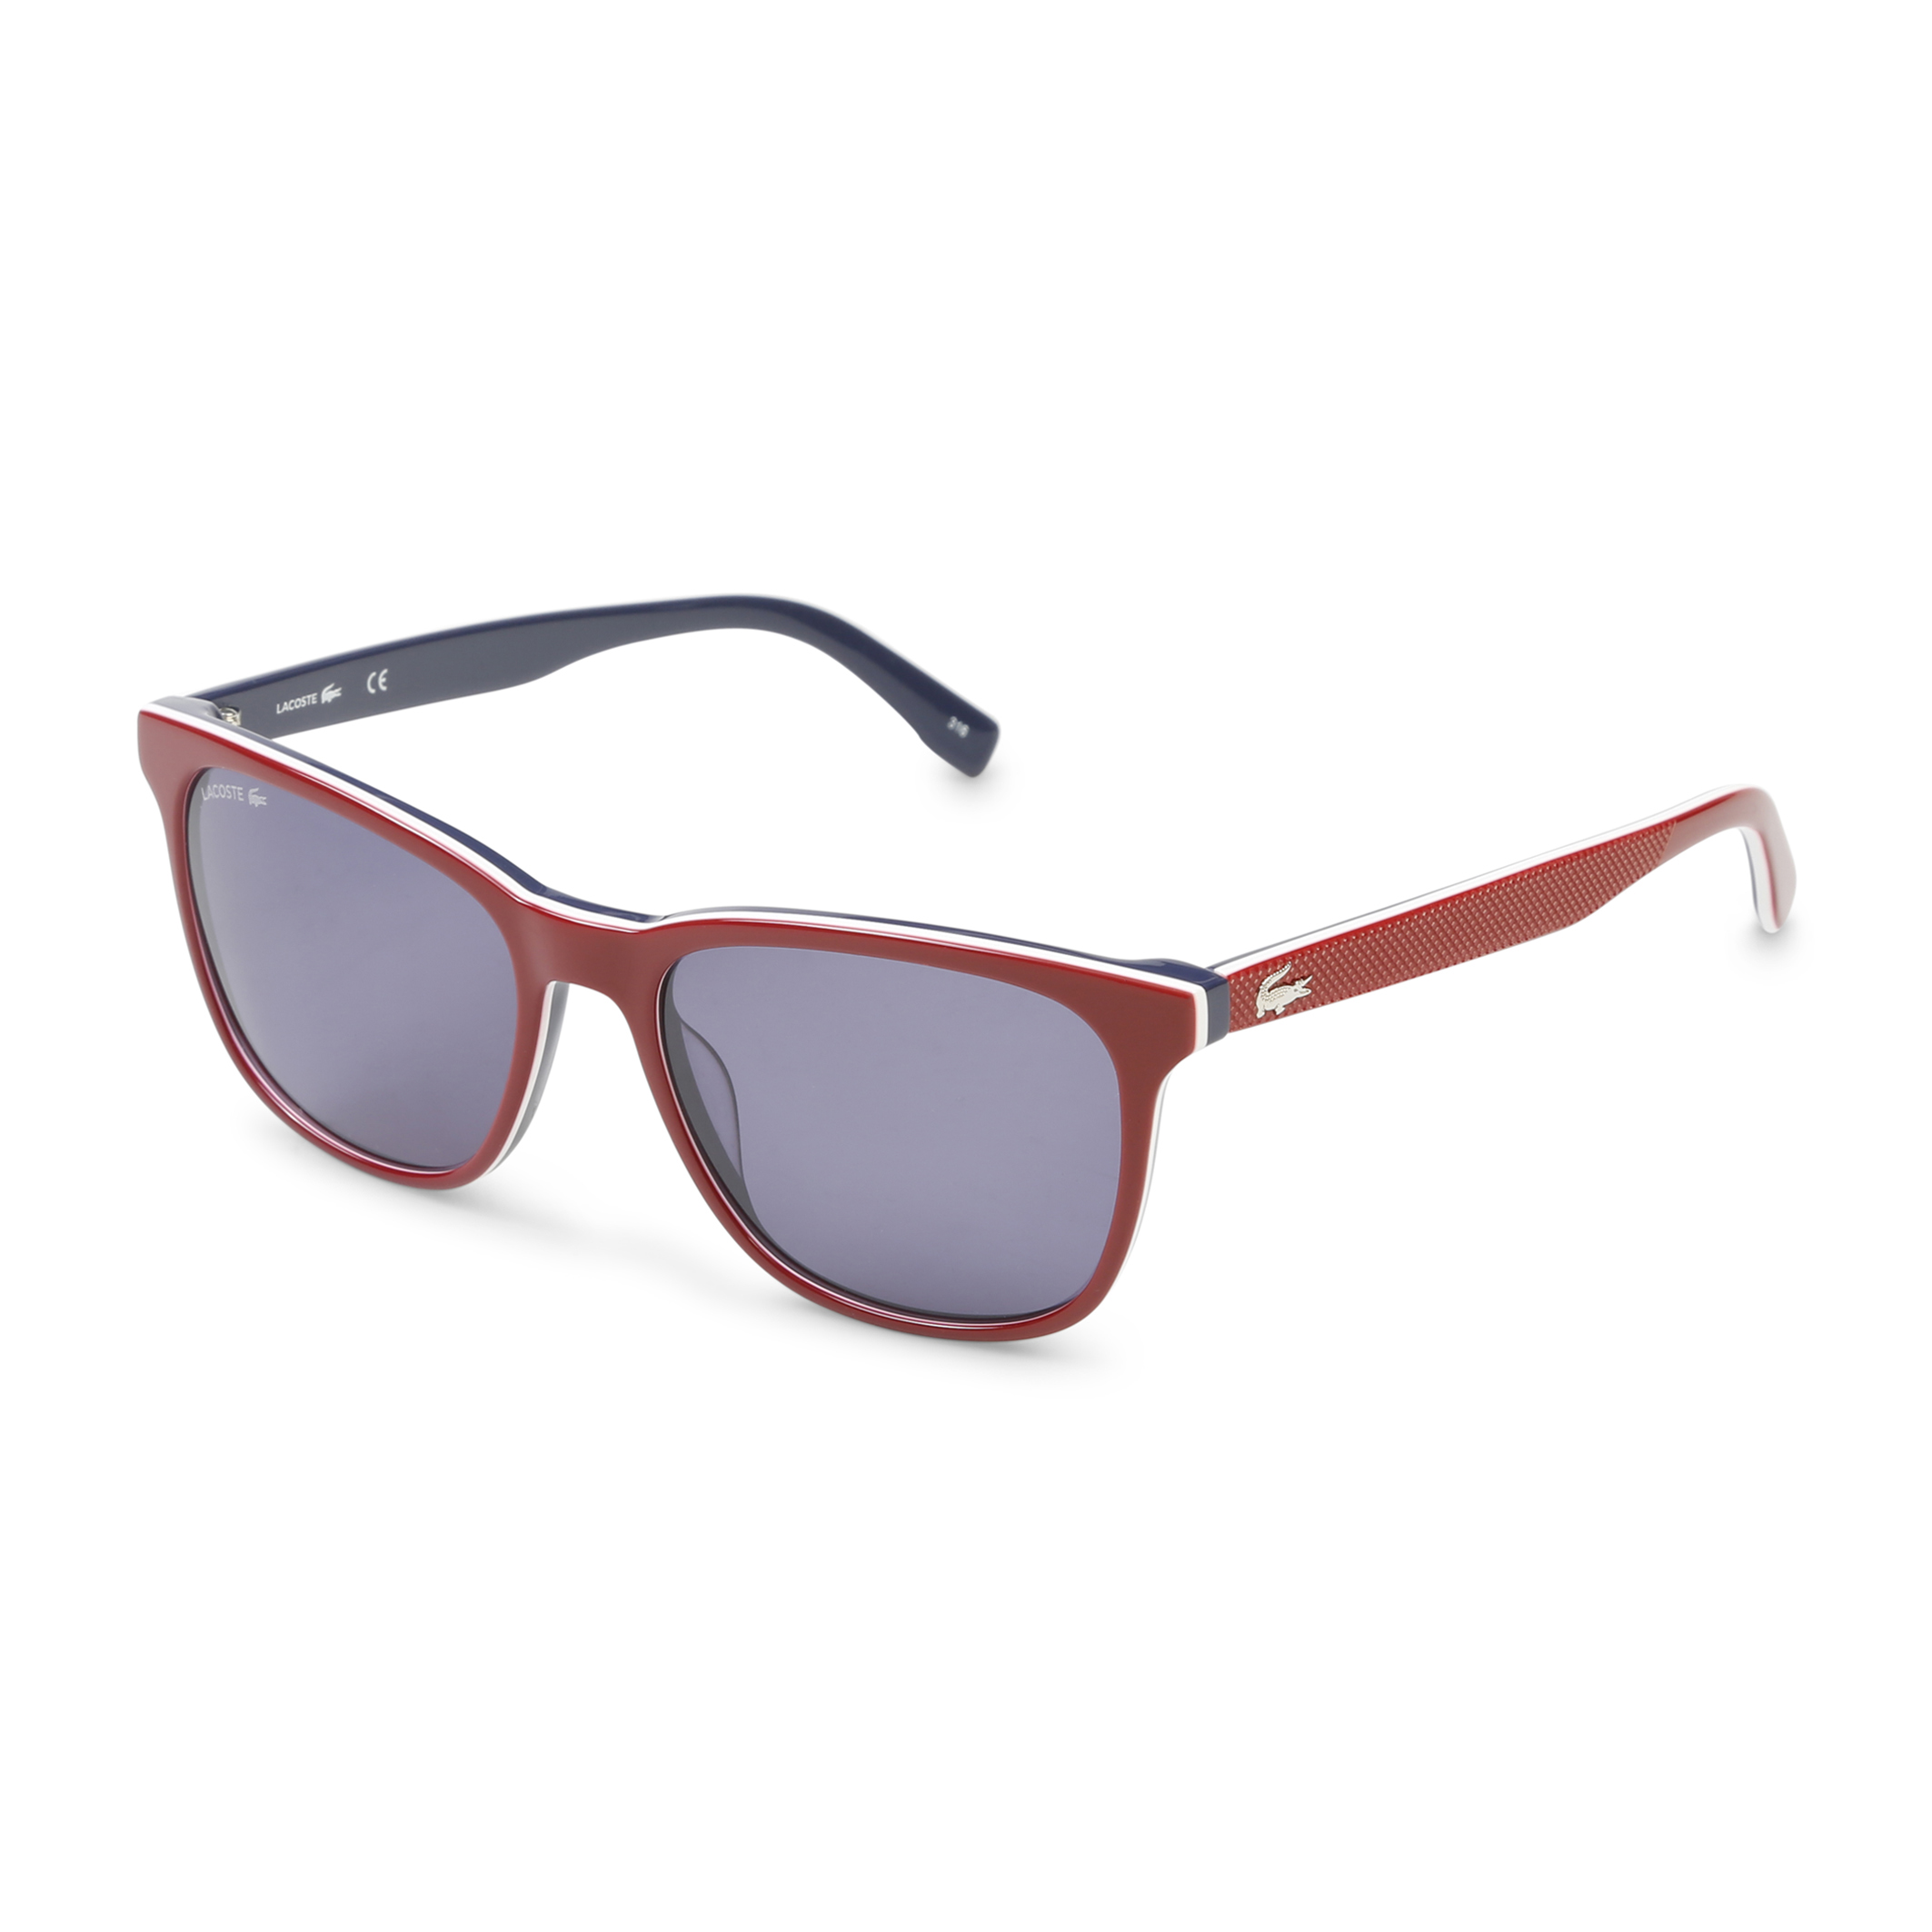 Lacoste Sonnenbrille » L833S«, rot, 615 - rot